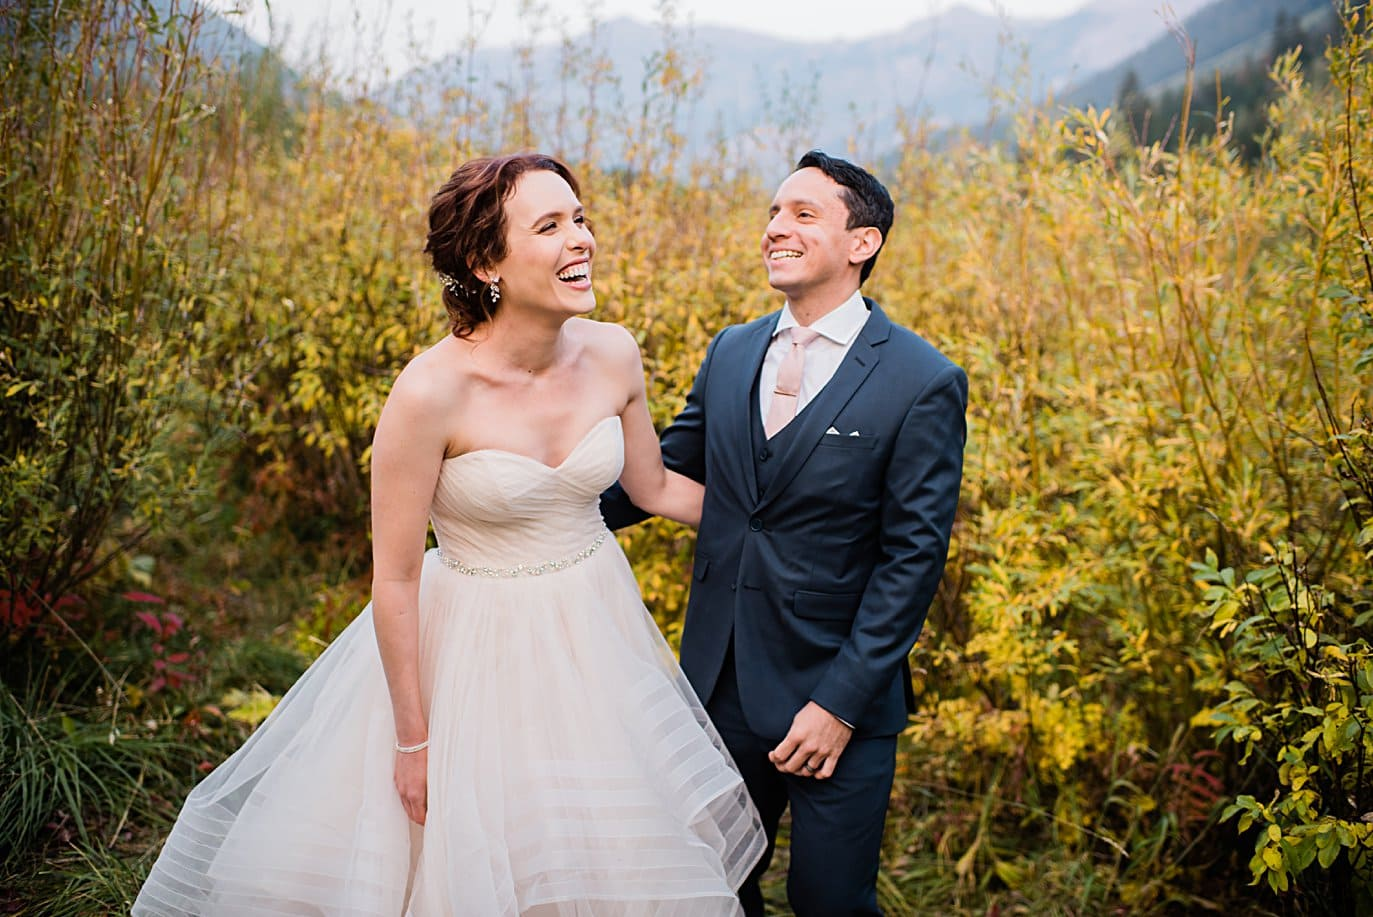 bride and groom laugh during fall wedding session in Aspen by Denver wedding photographer Jennie Crate